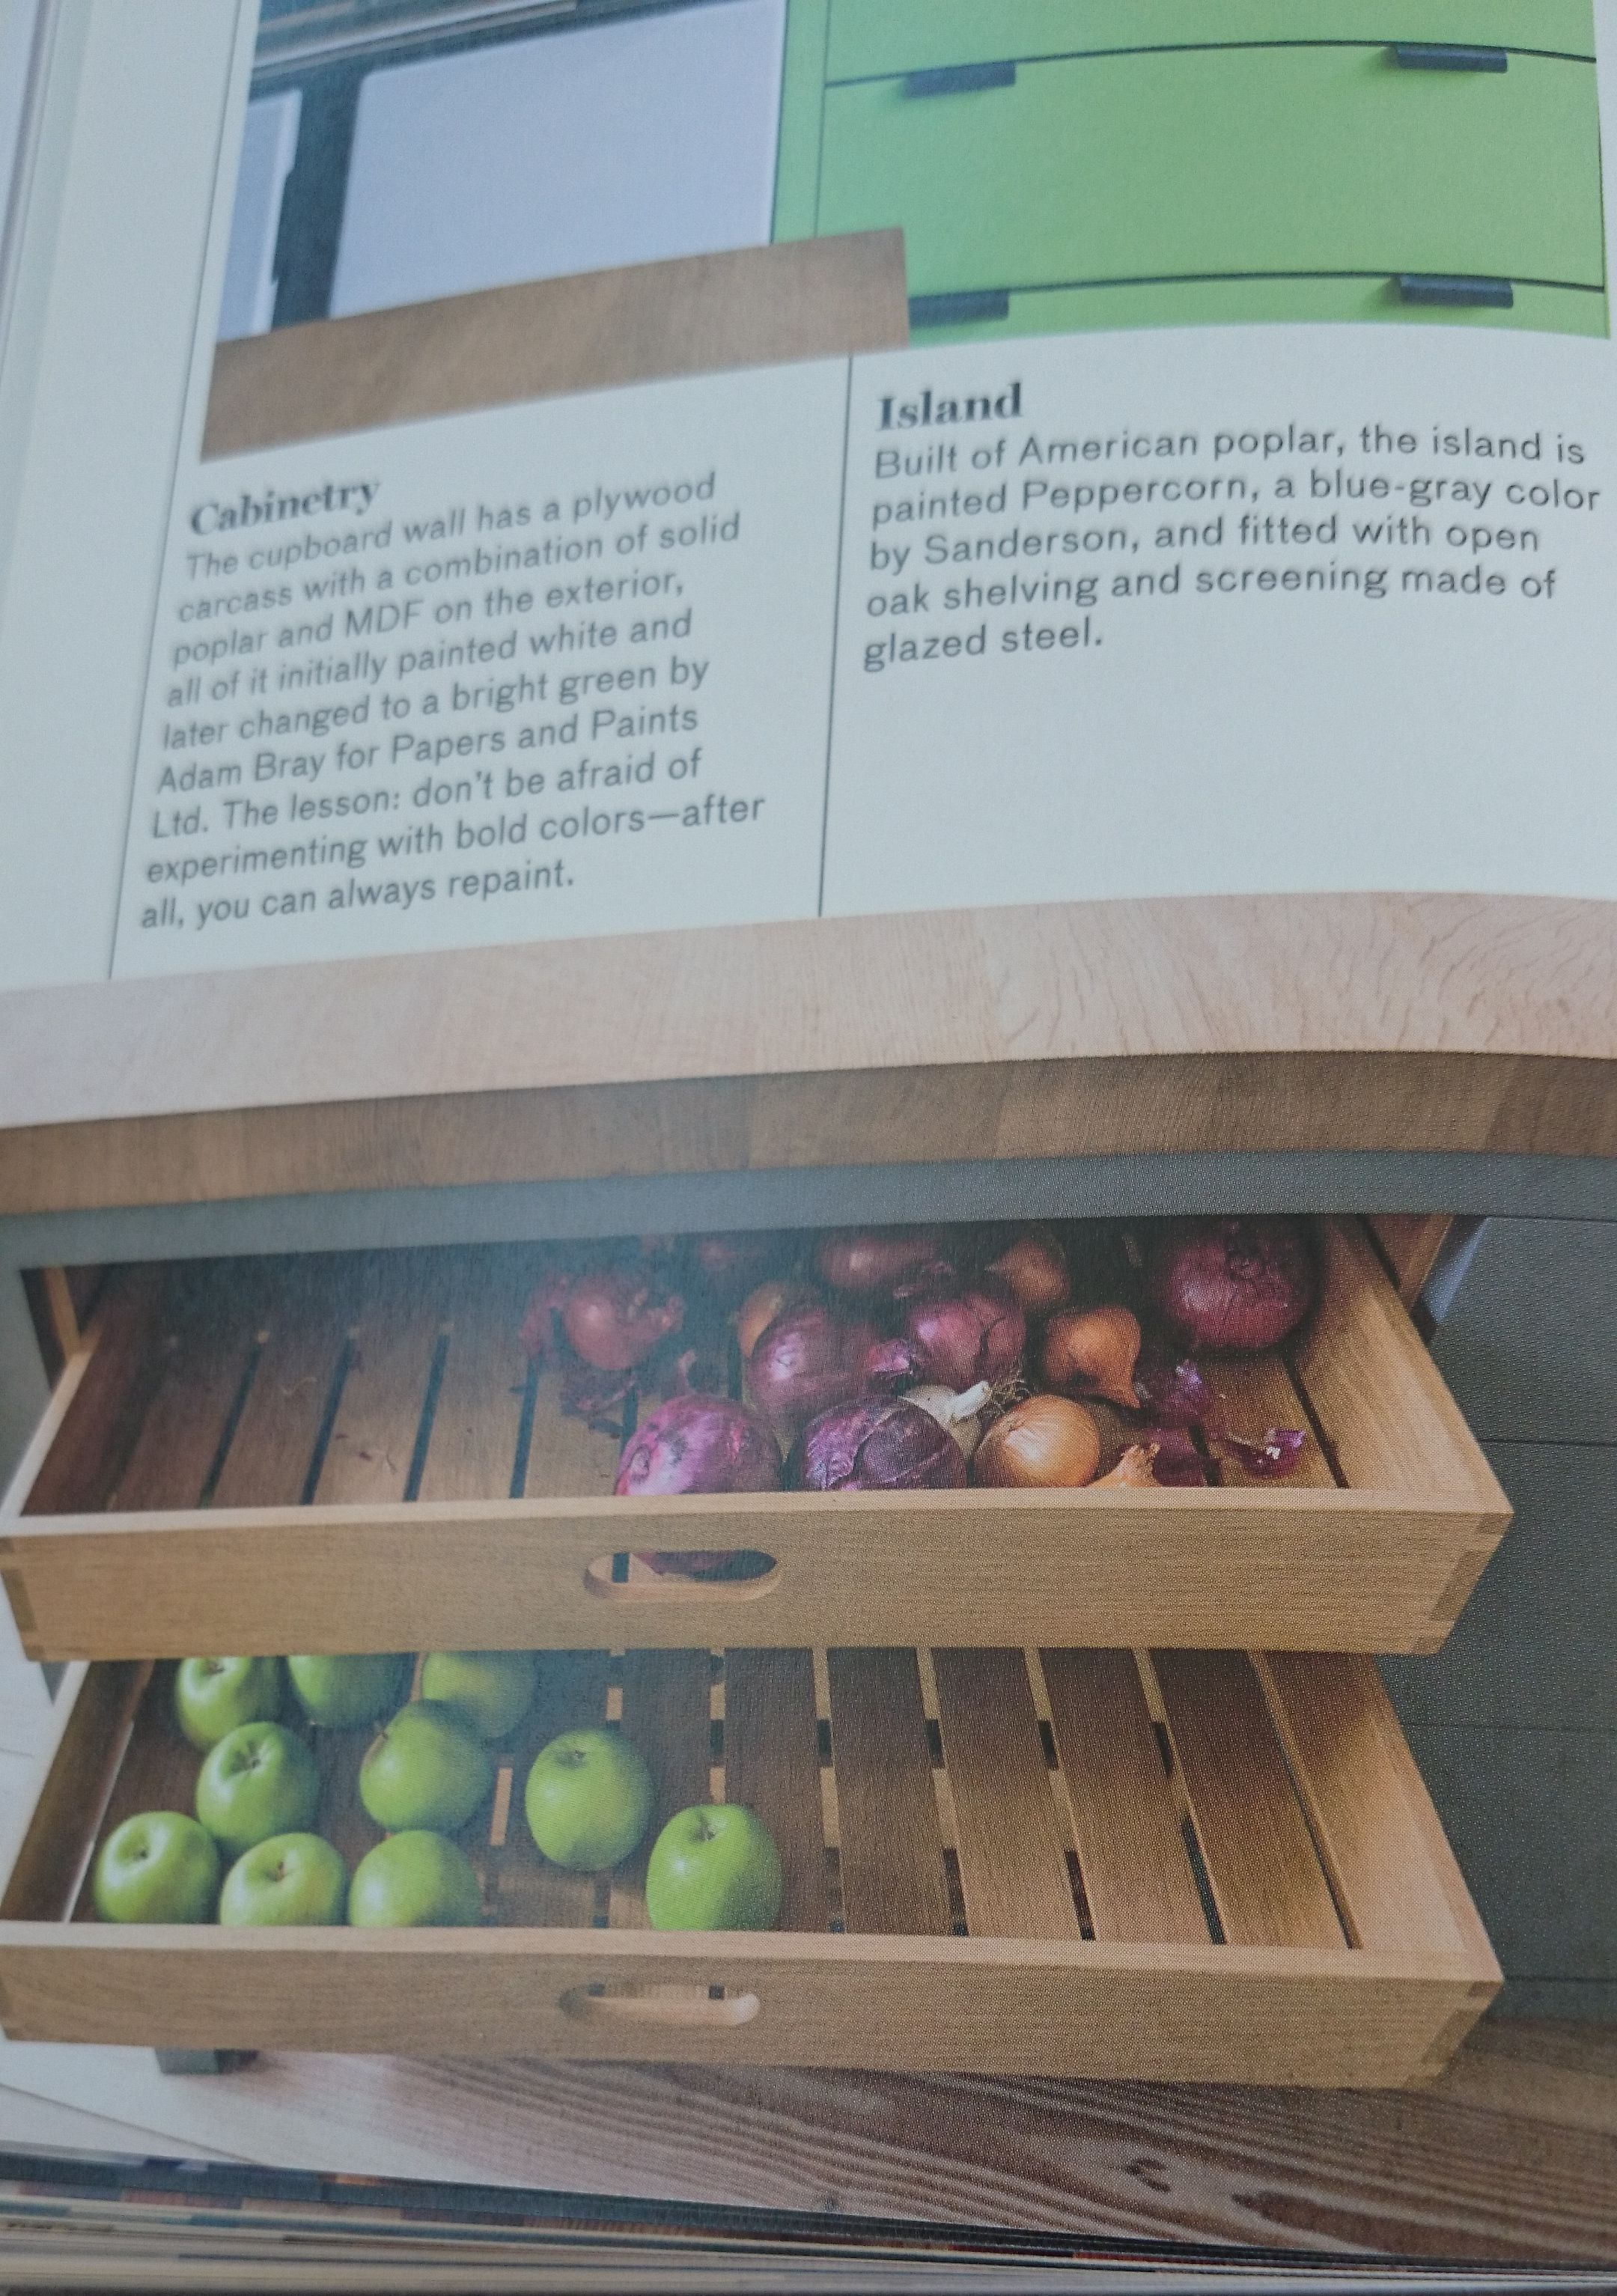 Smart cabinetry in coffee nook? perhaps root veges and spices/dry ...